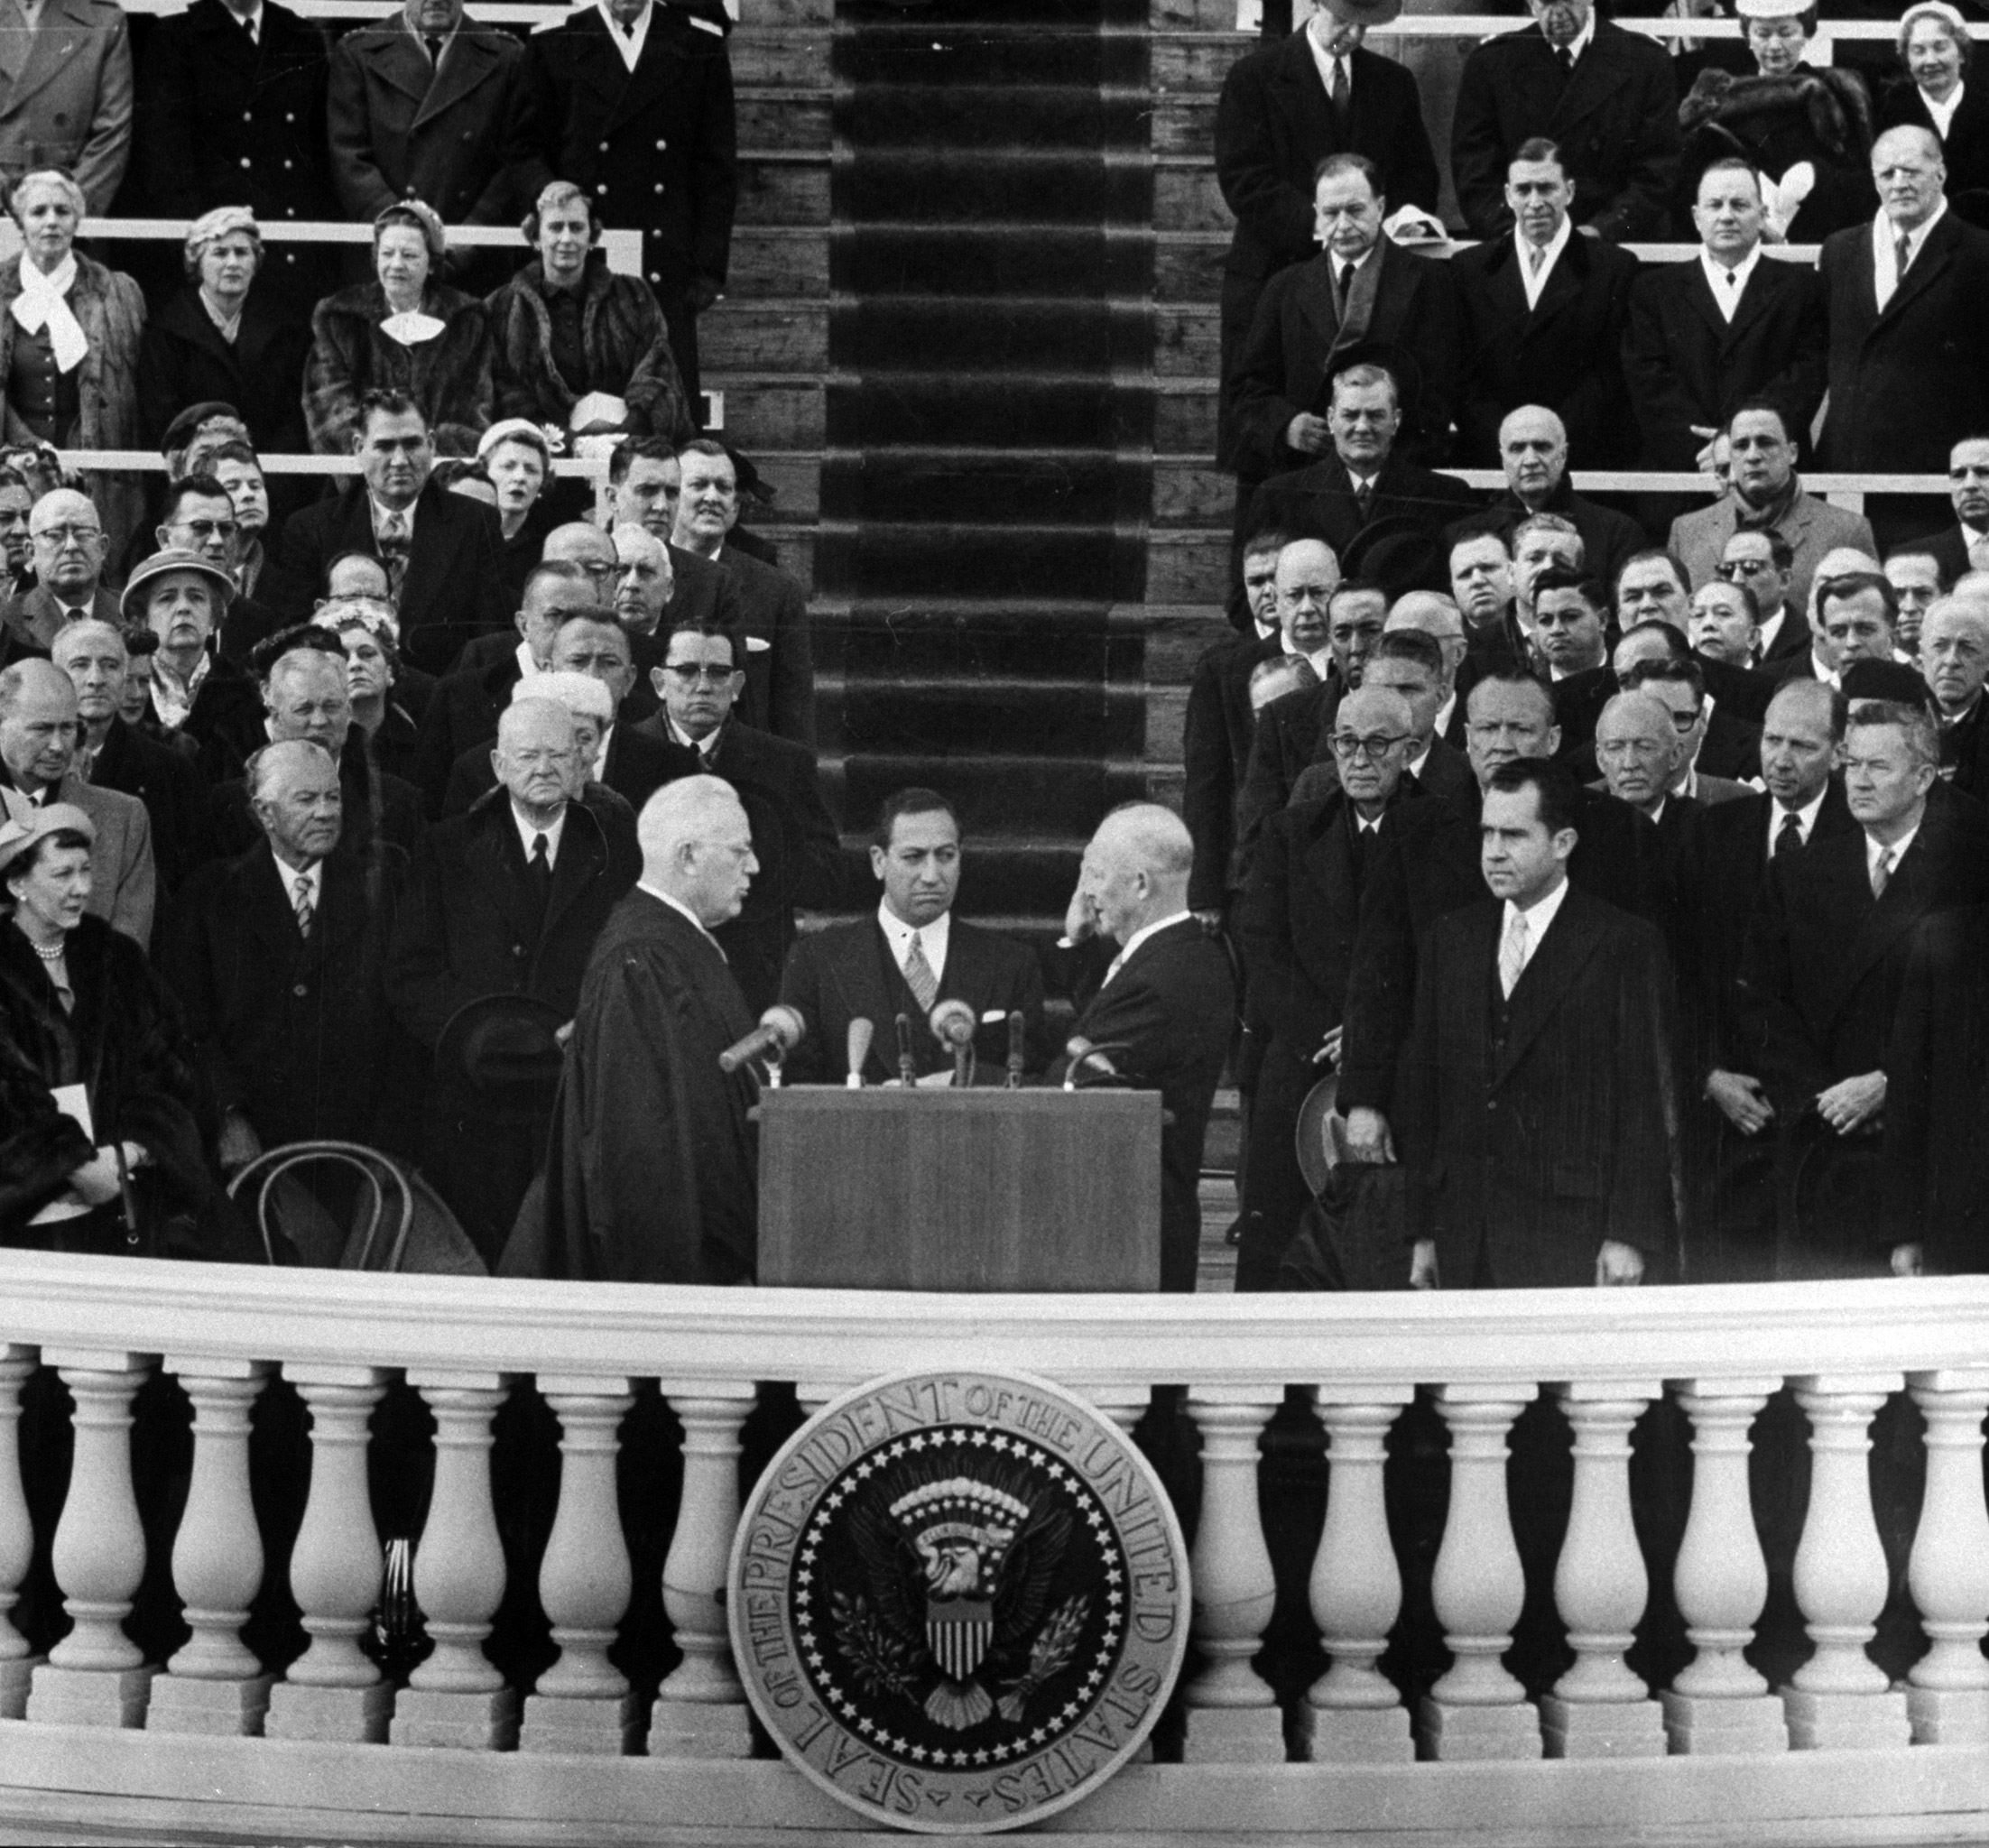 President Dwight D. Eisenhower taking the Oath of Office during Inauguration, 1957.